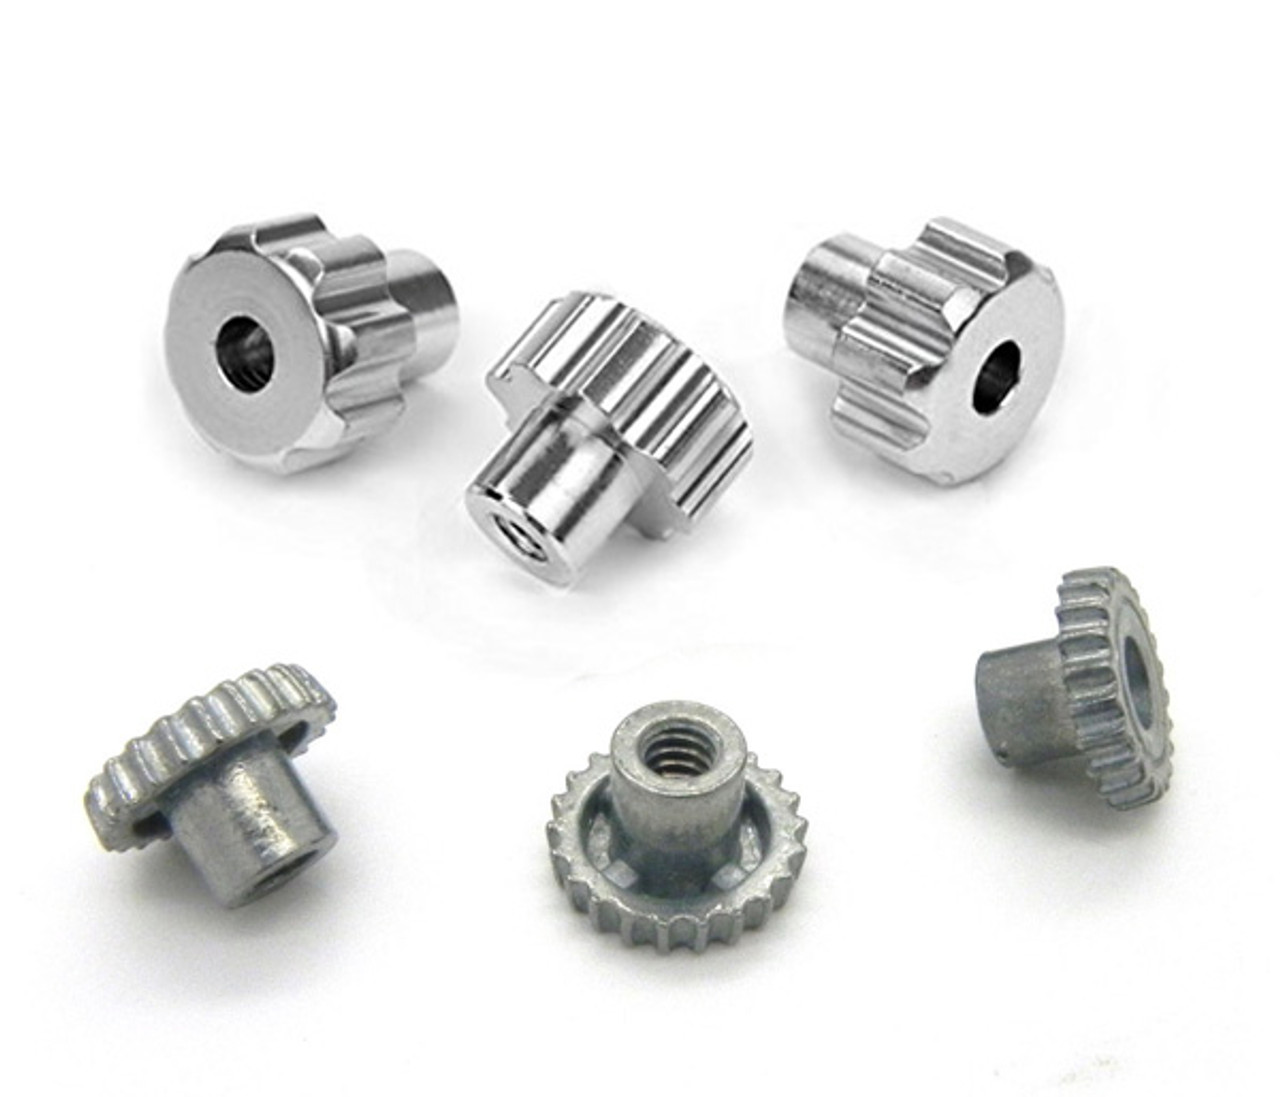 Metal Thumb Nuts for Airline Approved Kennels - Bulk 25